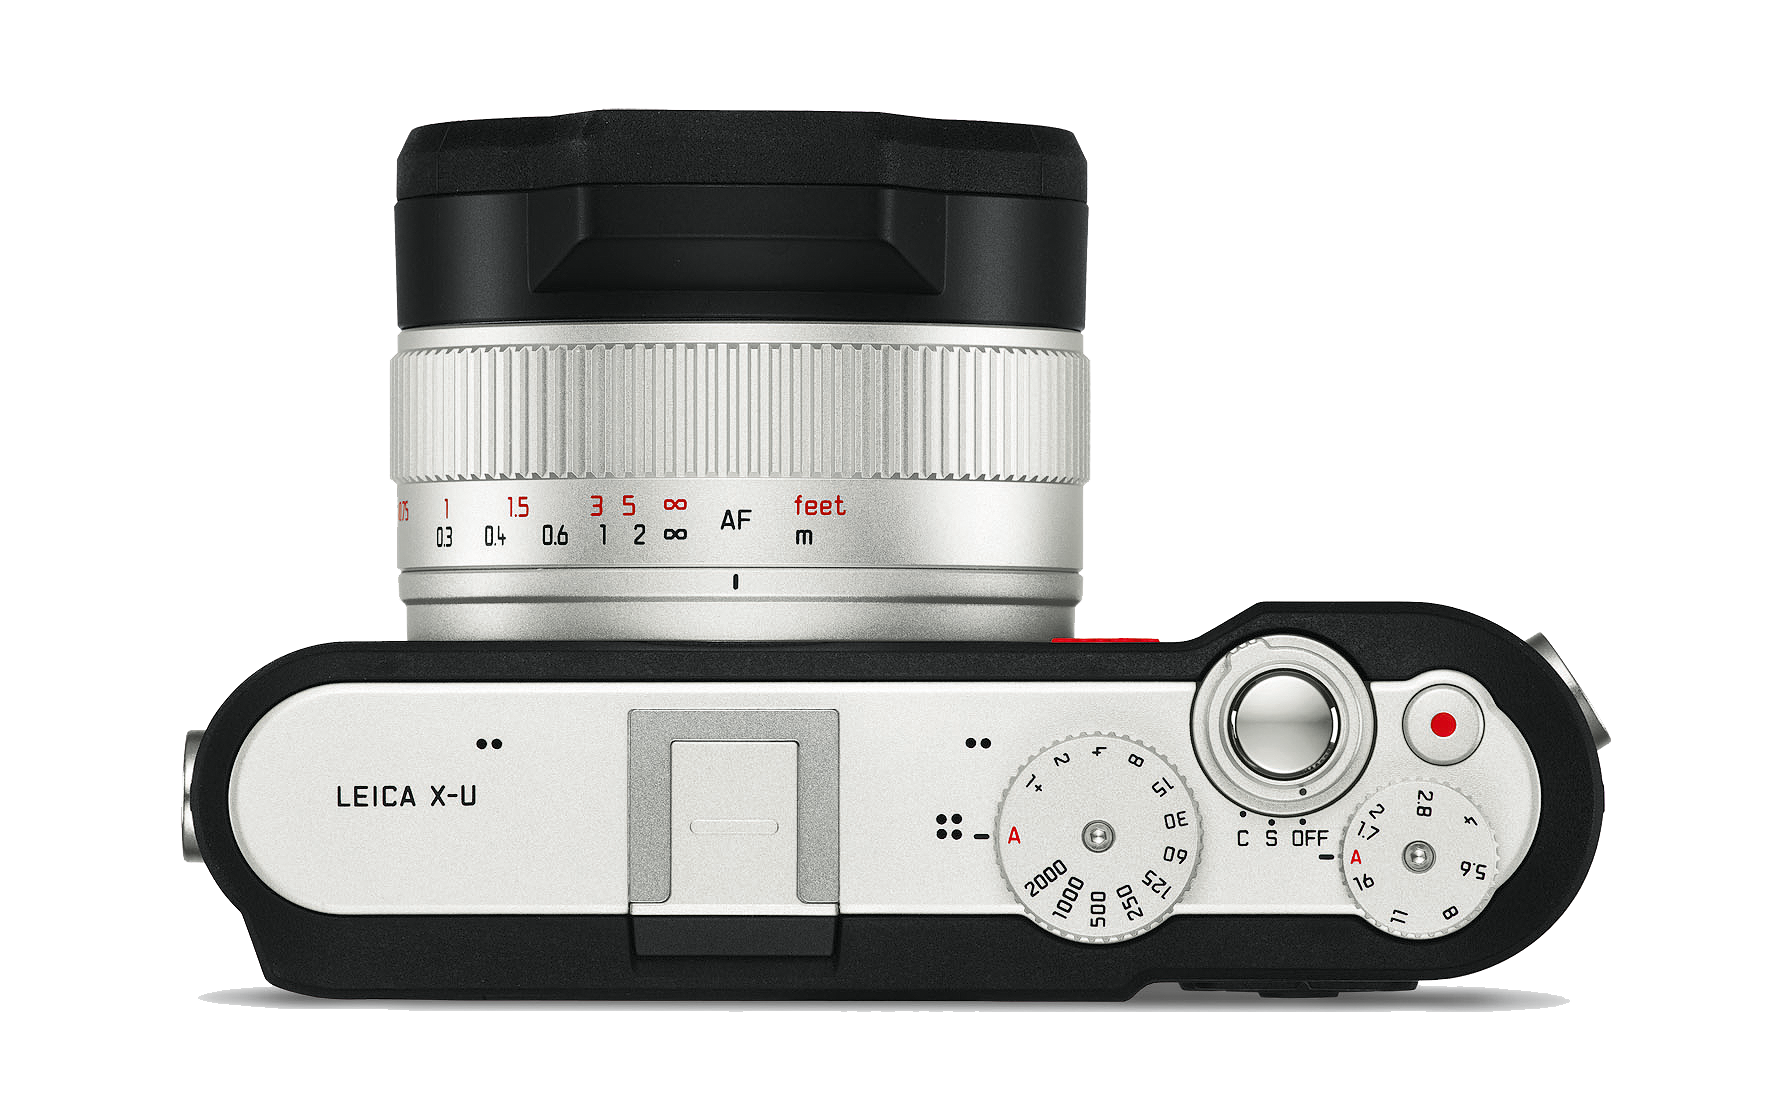 The Leica X-U's body was developed in partnership with AUDI Design